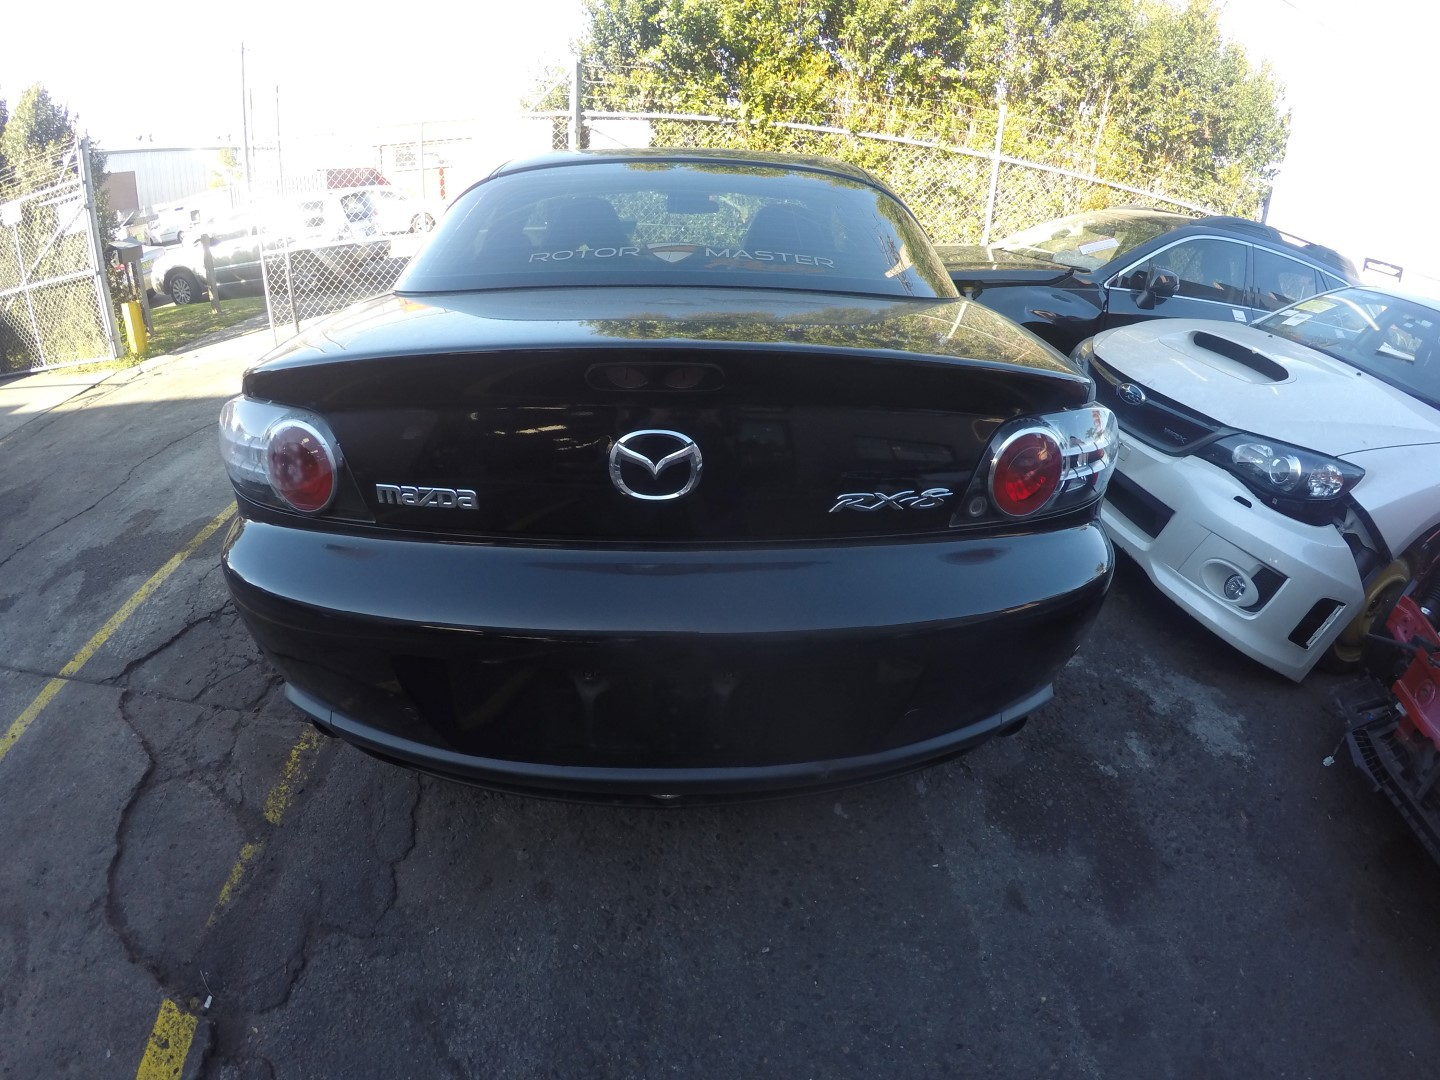 Mazda Wrecking RX-8 13B Engine Manual Low Km Parts Spares Sydney